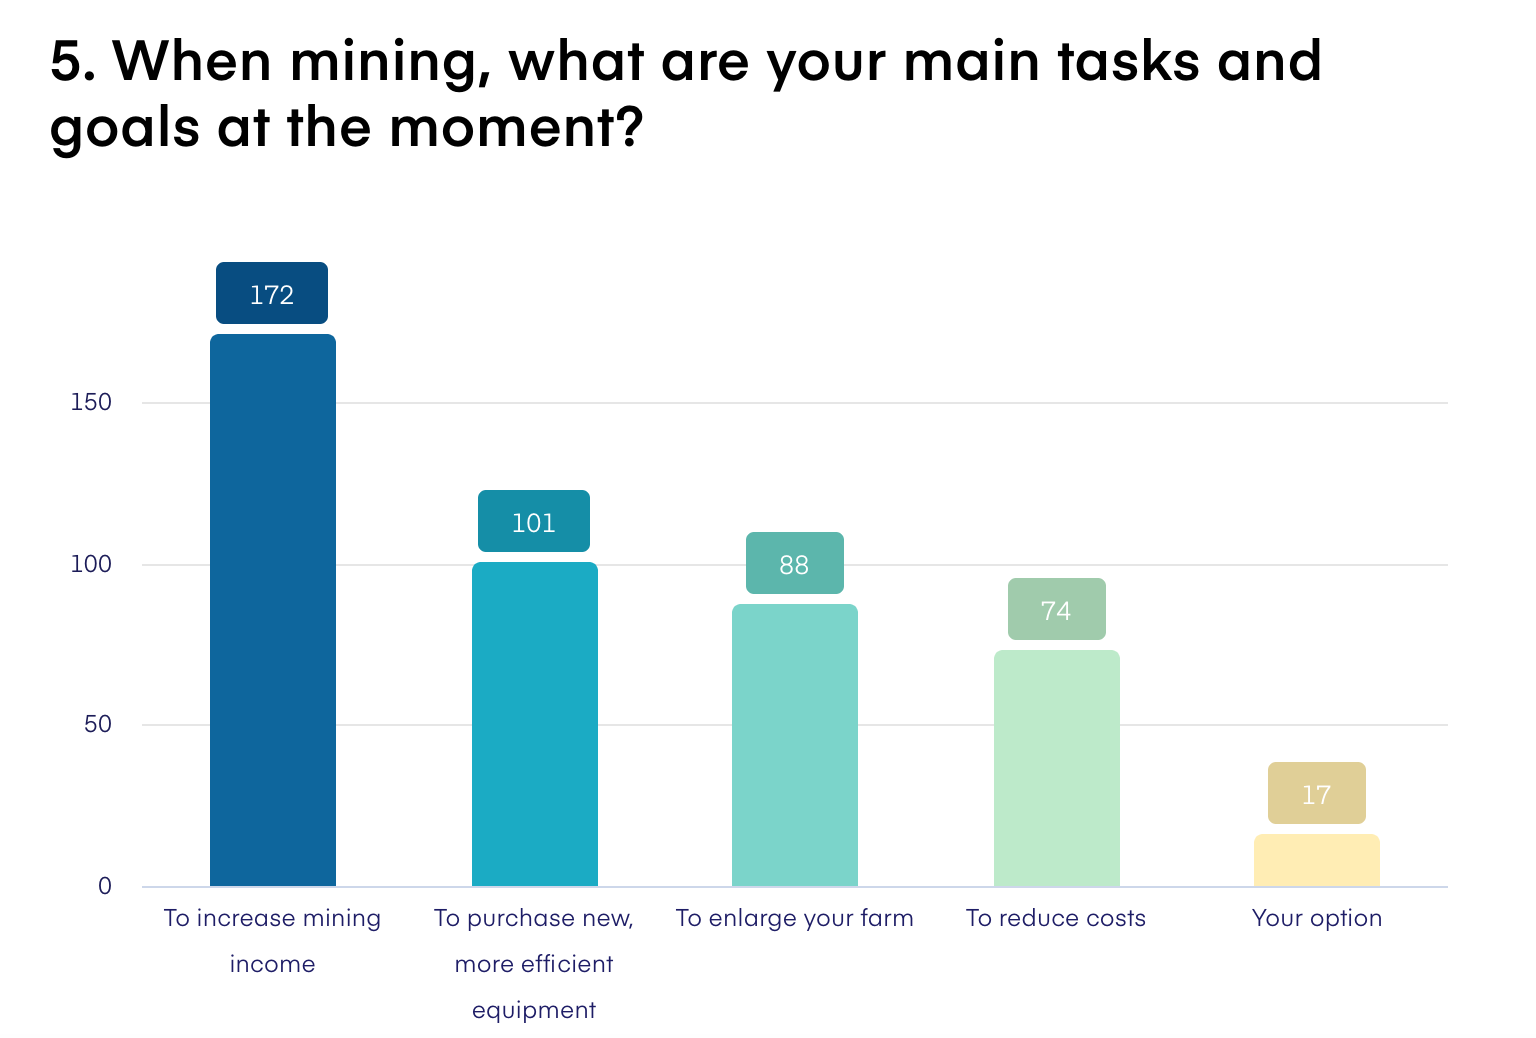 When mining what are your main tasks and goals at the moment